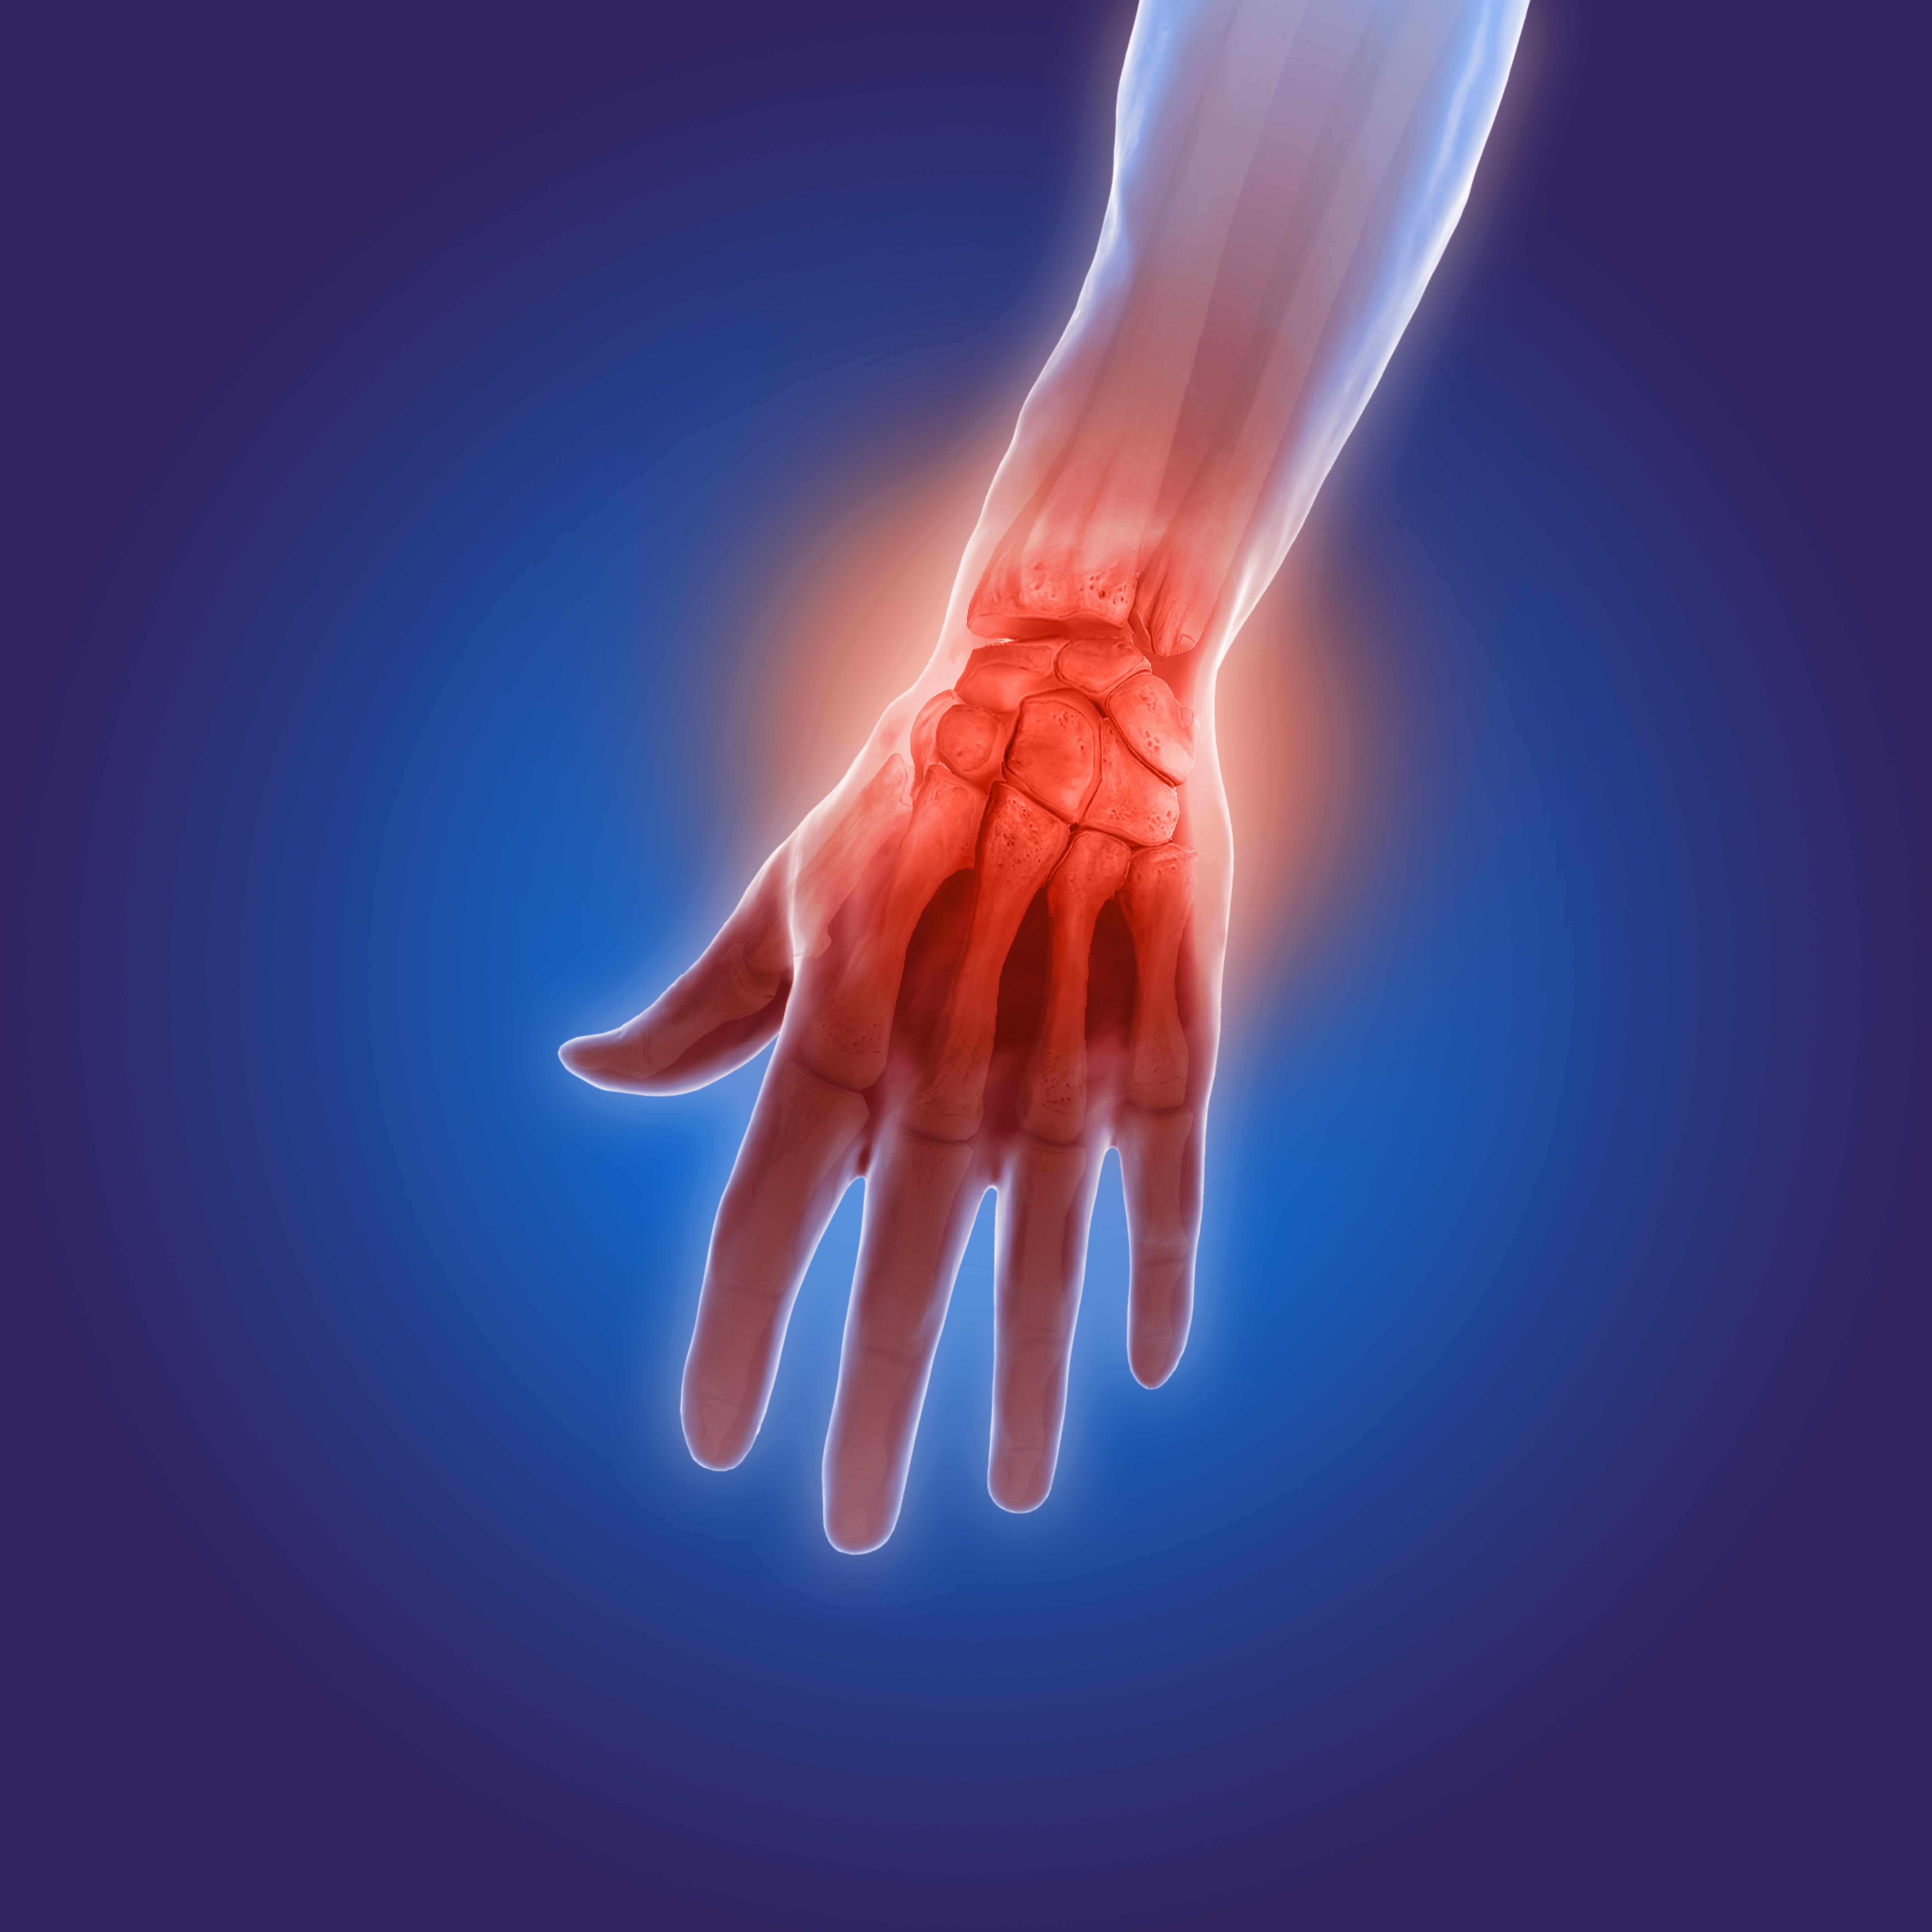 3d illustration of arthritis pain in hands